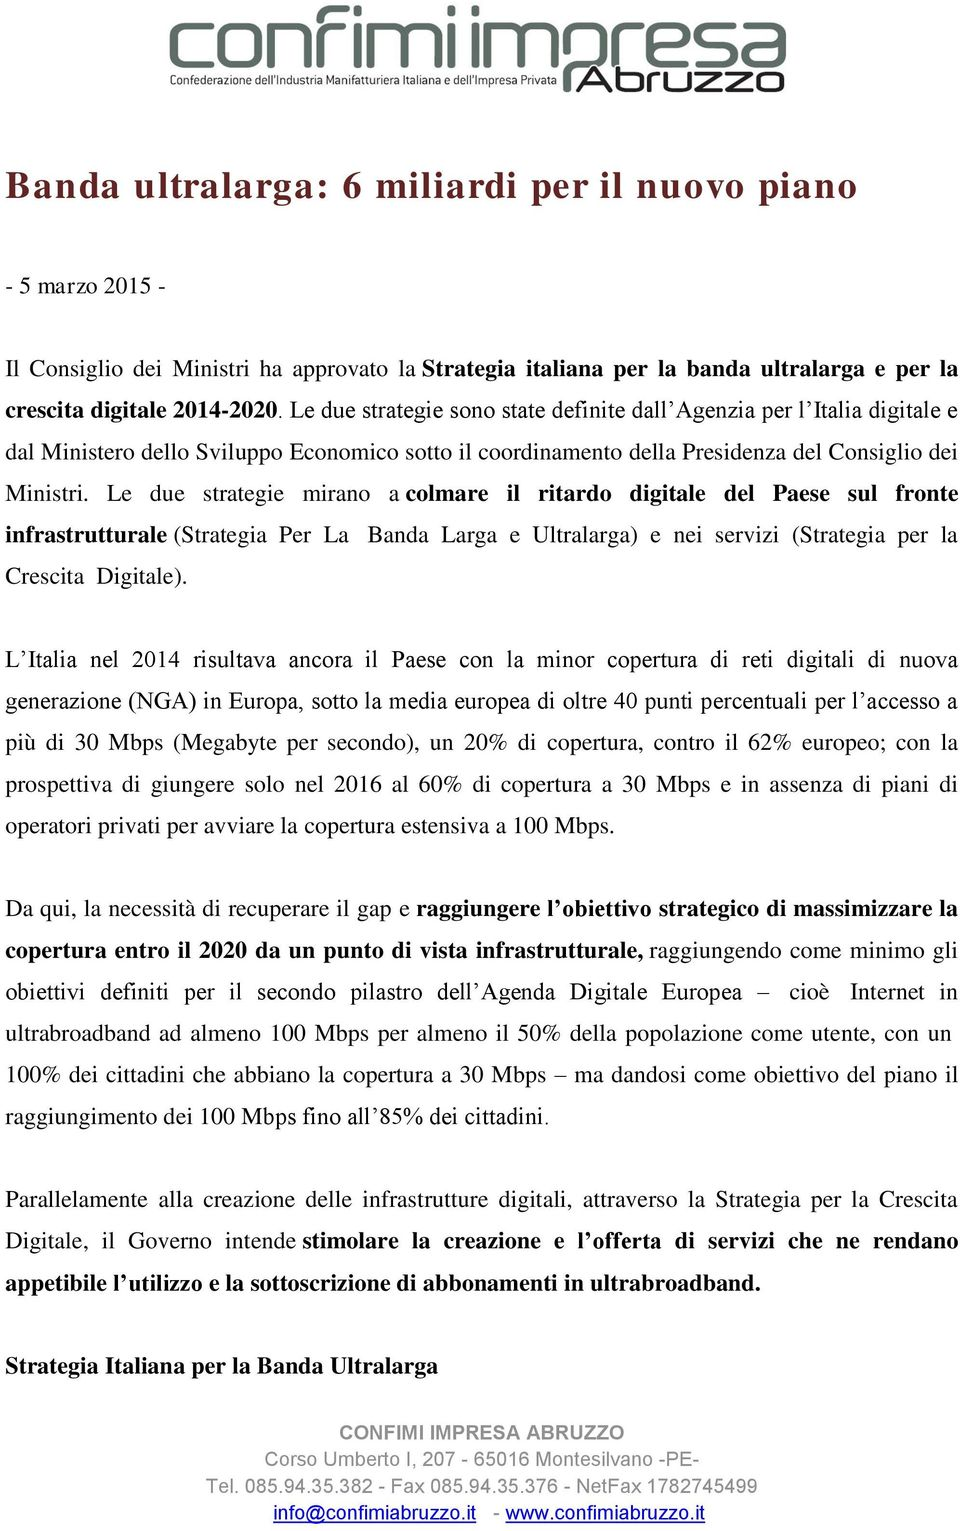 Le due strategie mirano a colmare il ritardo digitale del Paese sul fronte infrastrutturale (Strategia Per La Banda Larga e Ultralarga) e nei servizi (Strategia per la Crescita Digitale).